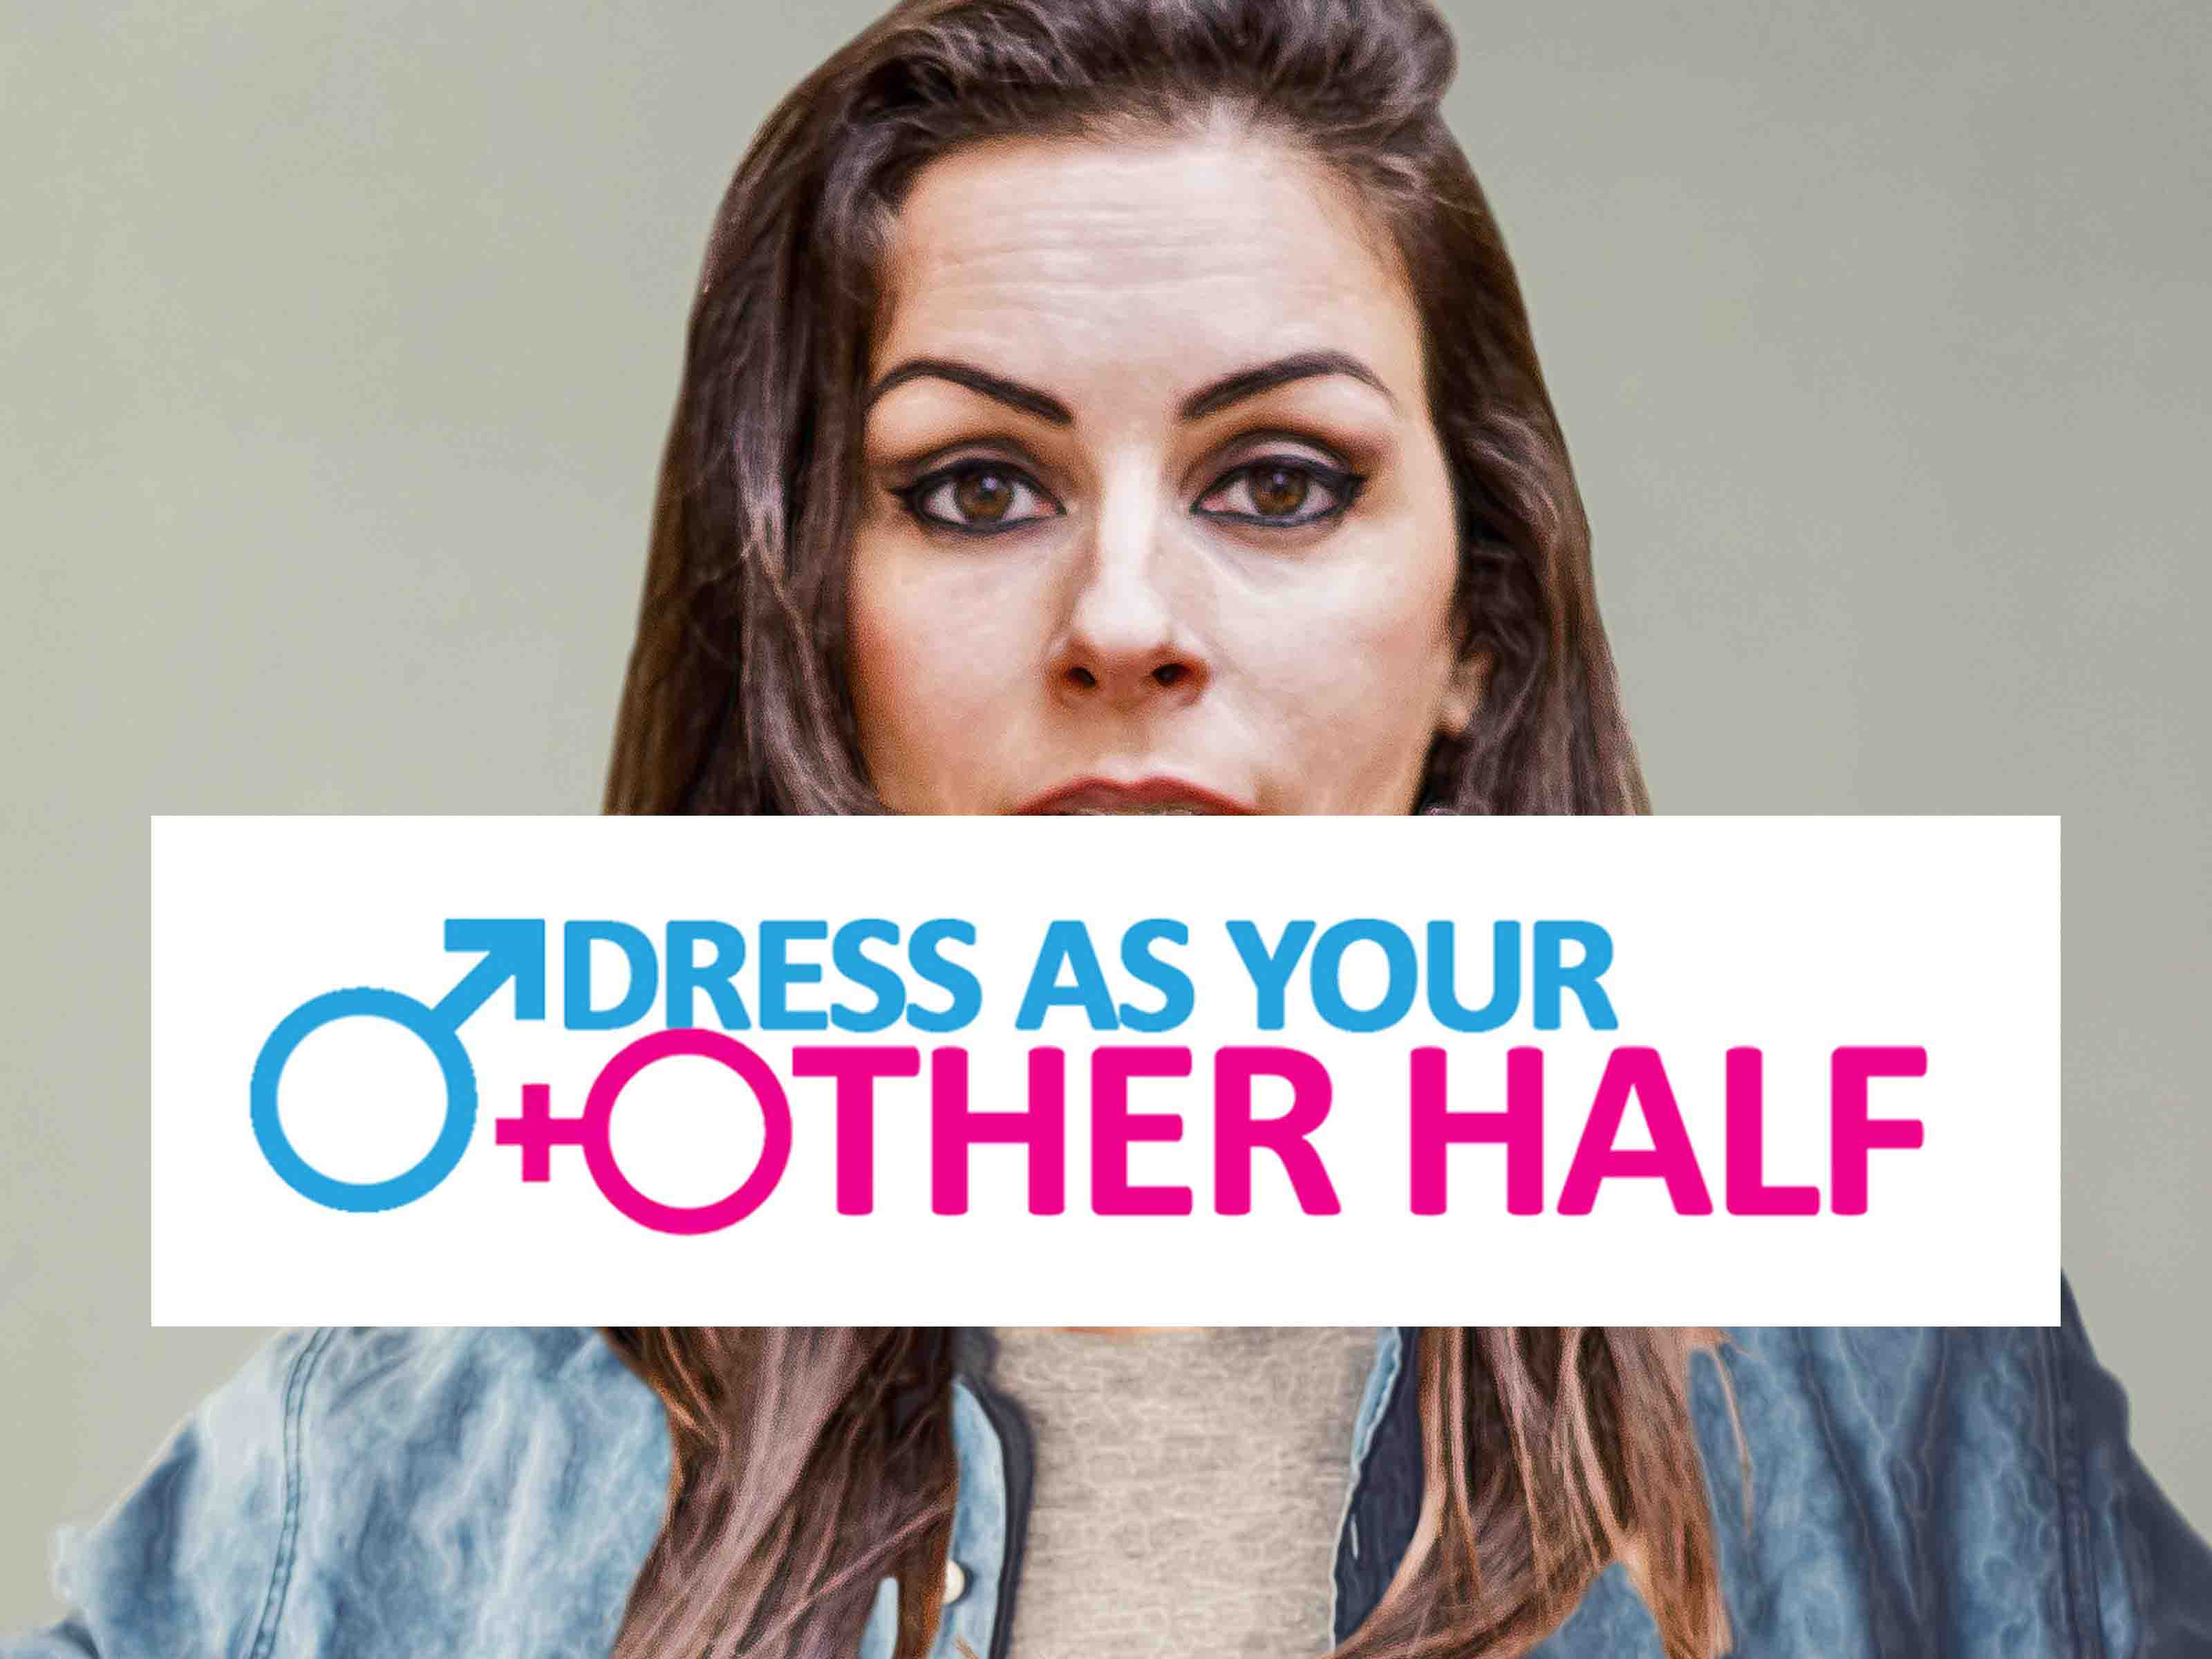 Hen Party Themes - Dress As Your Other Half